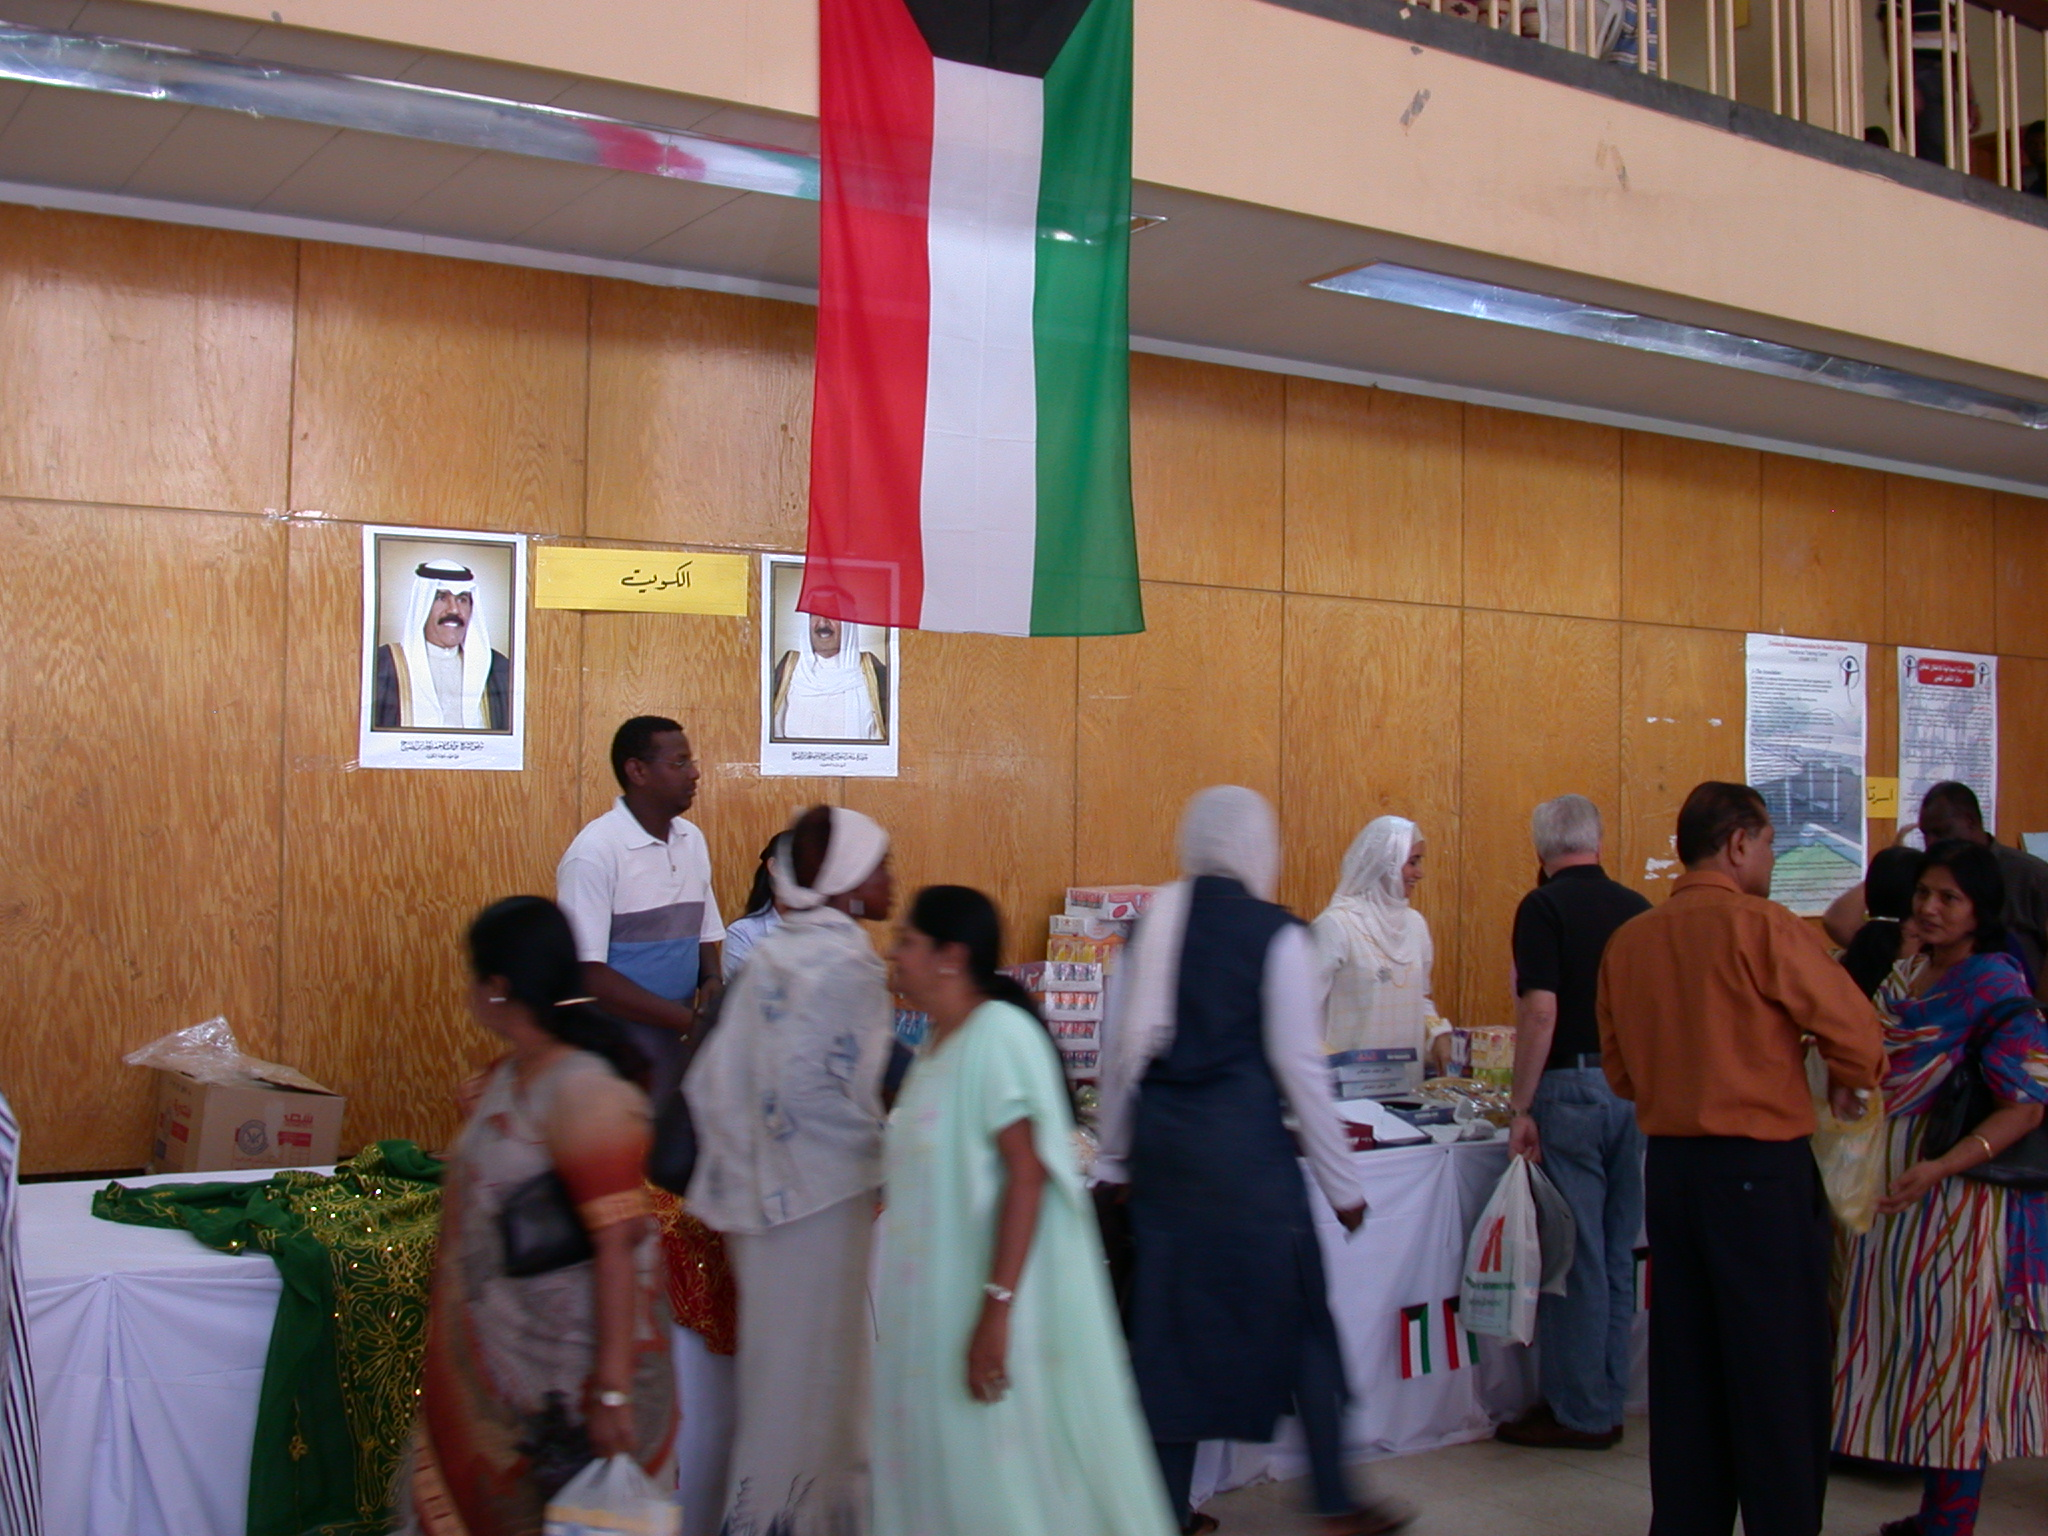 Kuwait Booth, International Charity Fair, Khartoum, Sudan